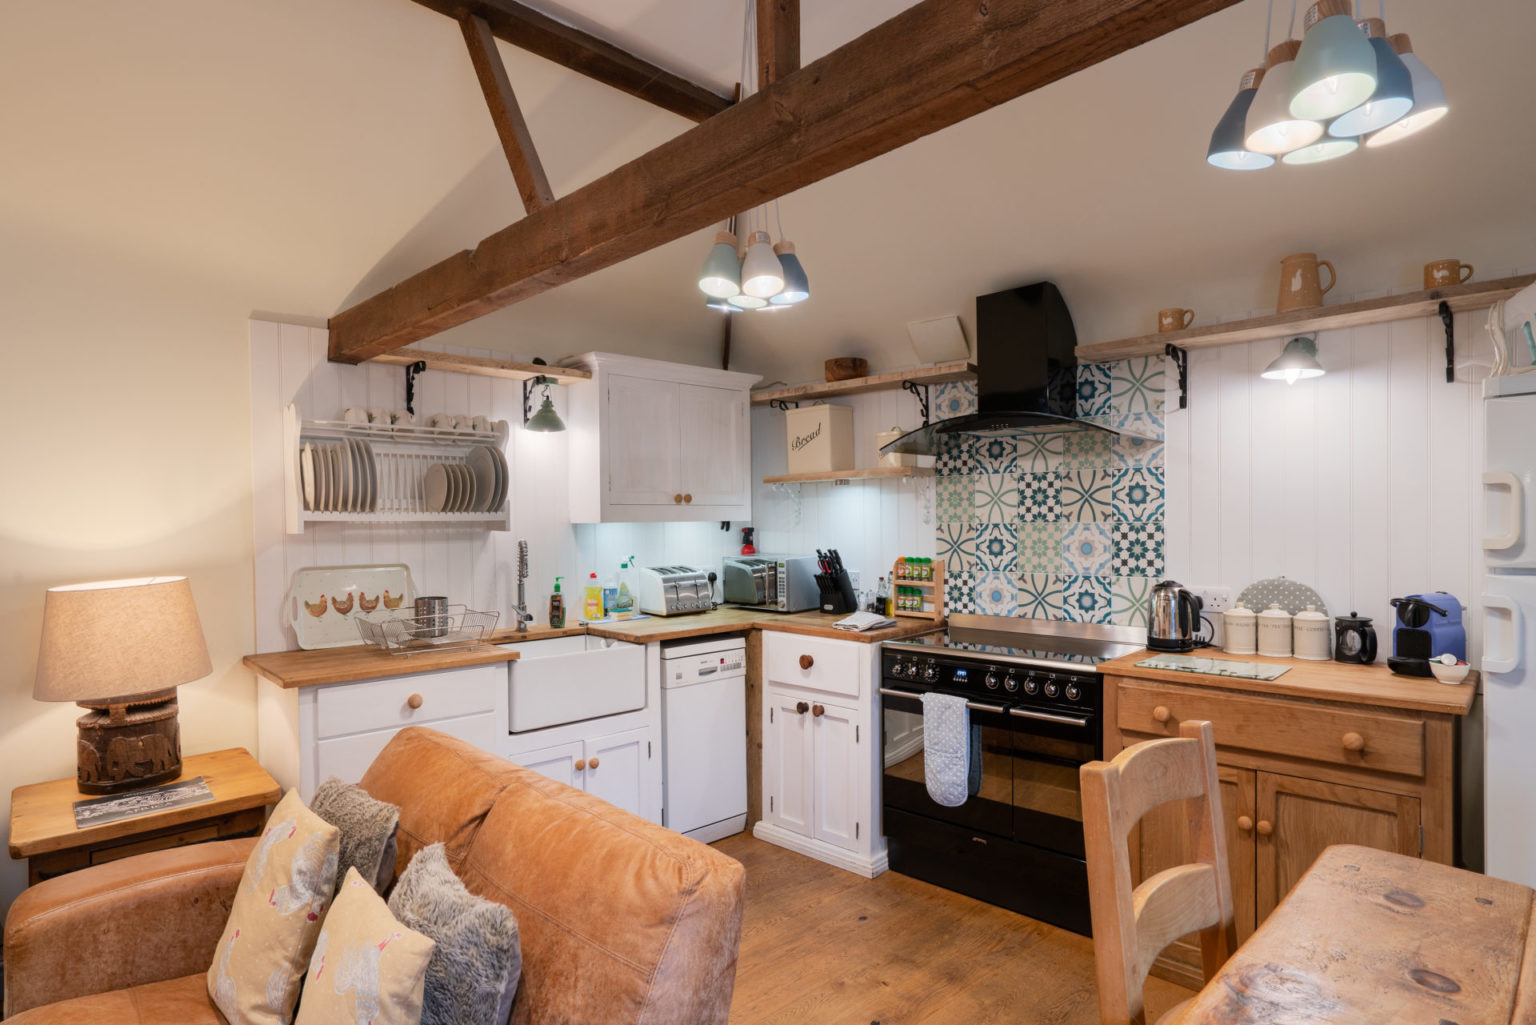 2019 Waterperry kitchen diagonal